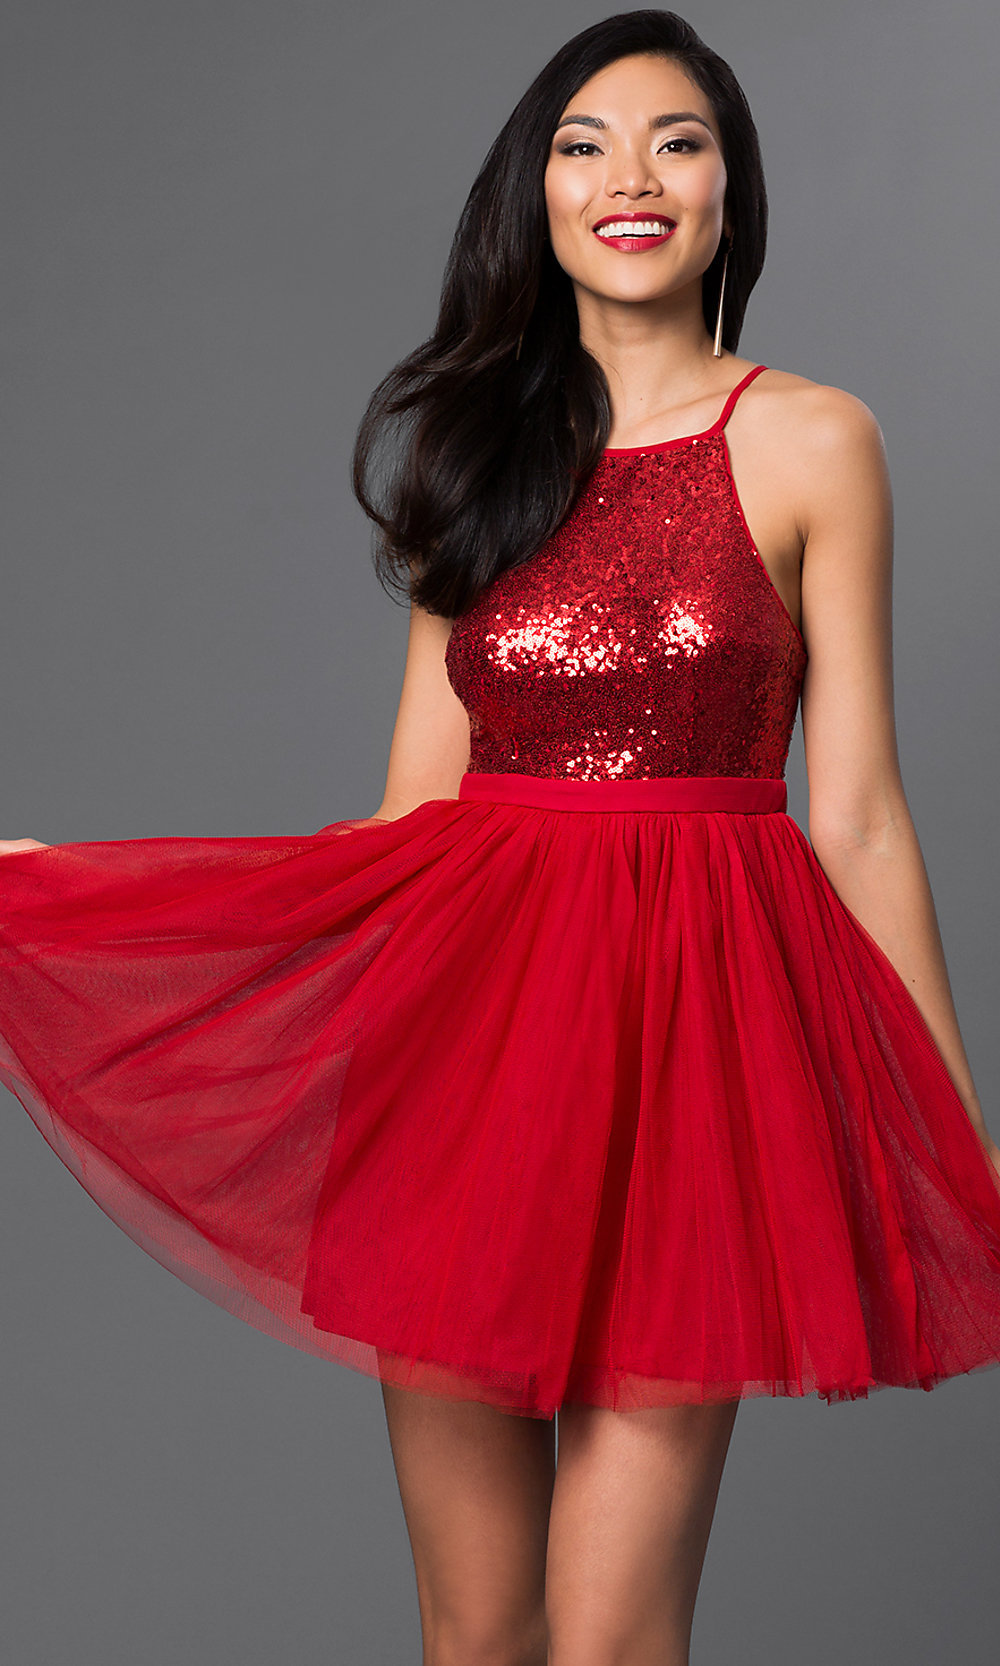 Cute Strapless Backless Red Homecoming Dresses Short Prom